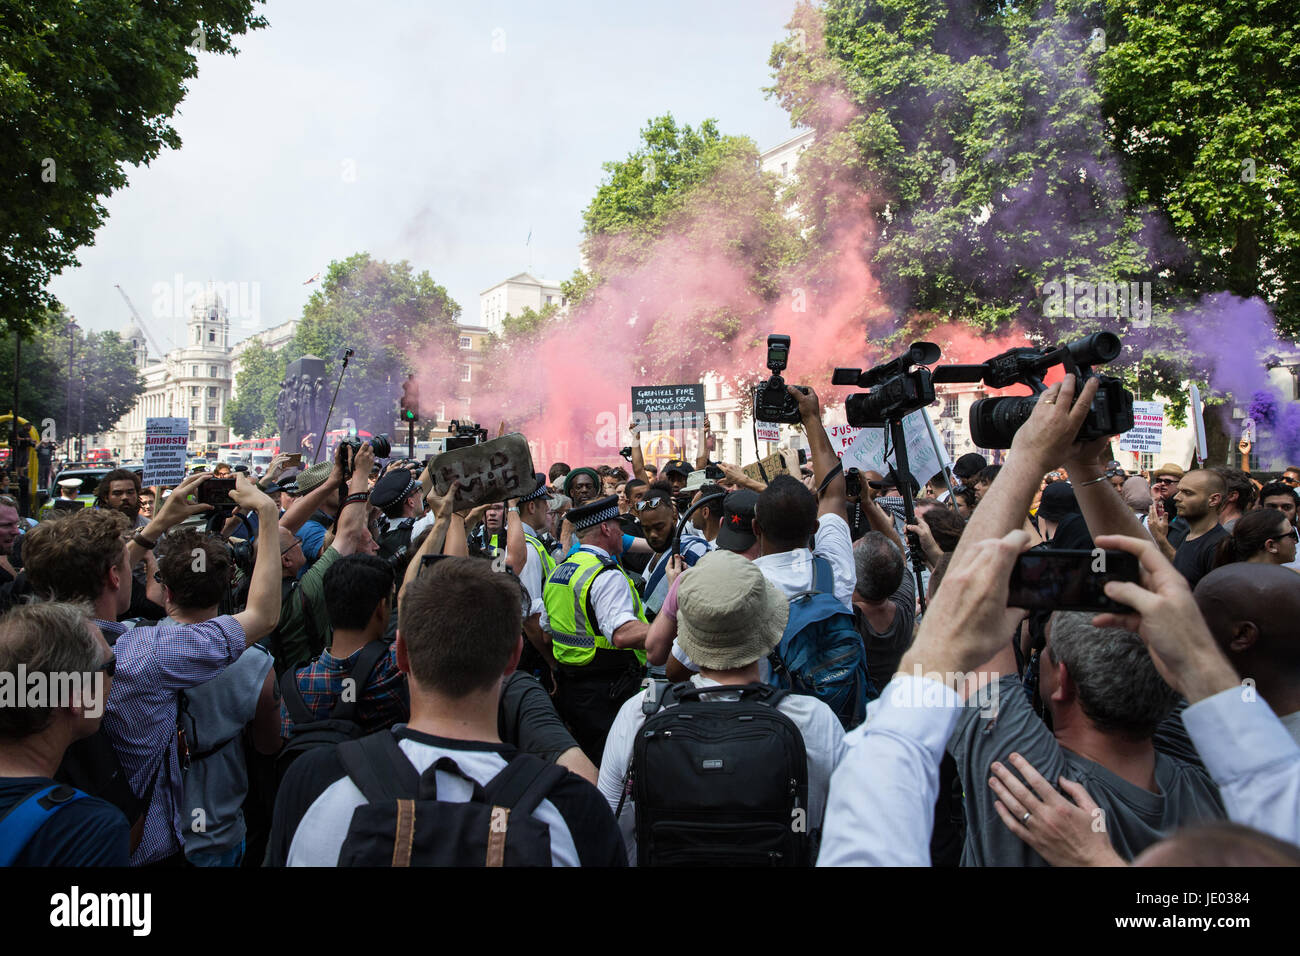 London, UK. 21st June, 2017. Smoke grenades outside Downing Street during a 'Day of Rage' march by activists from Stock Photo